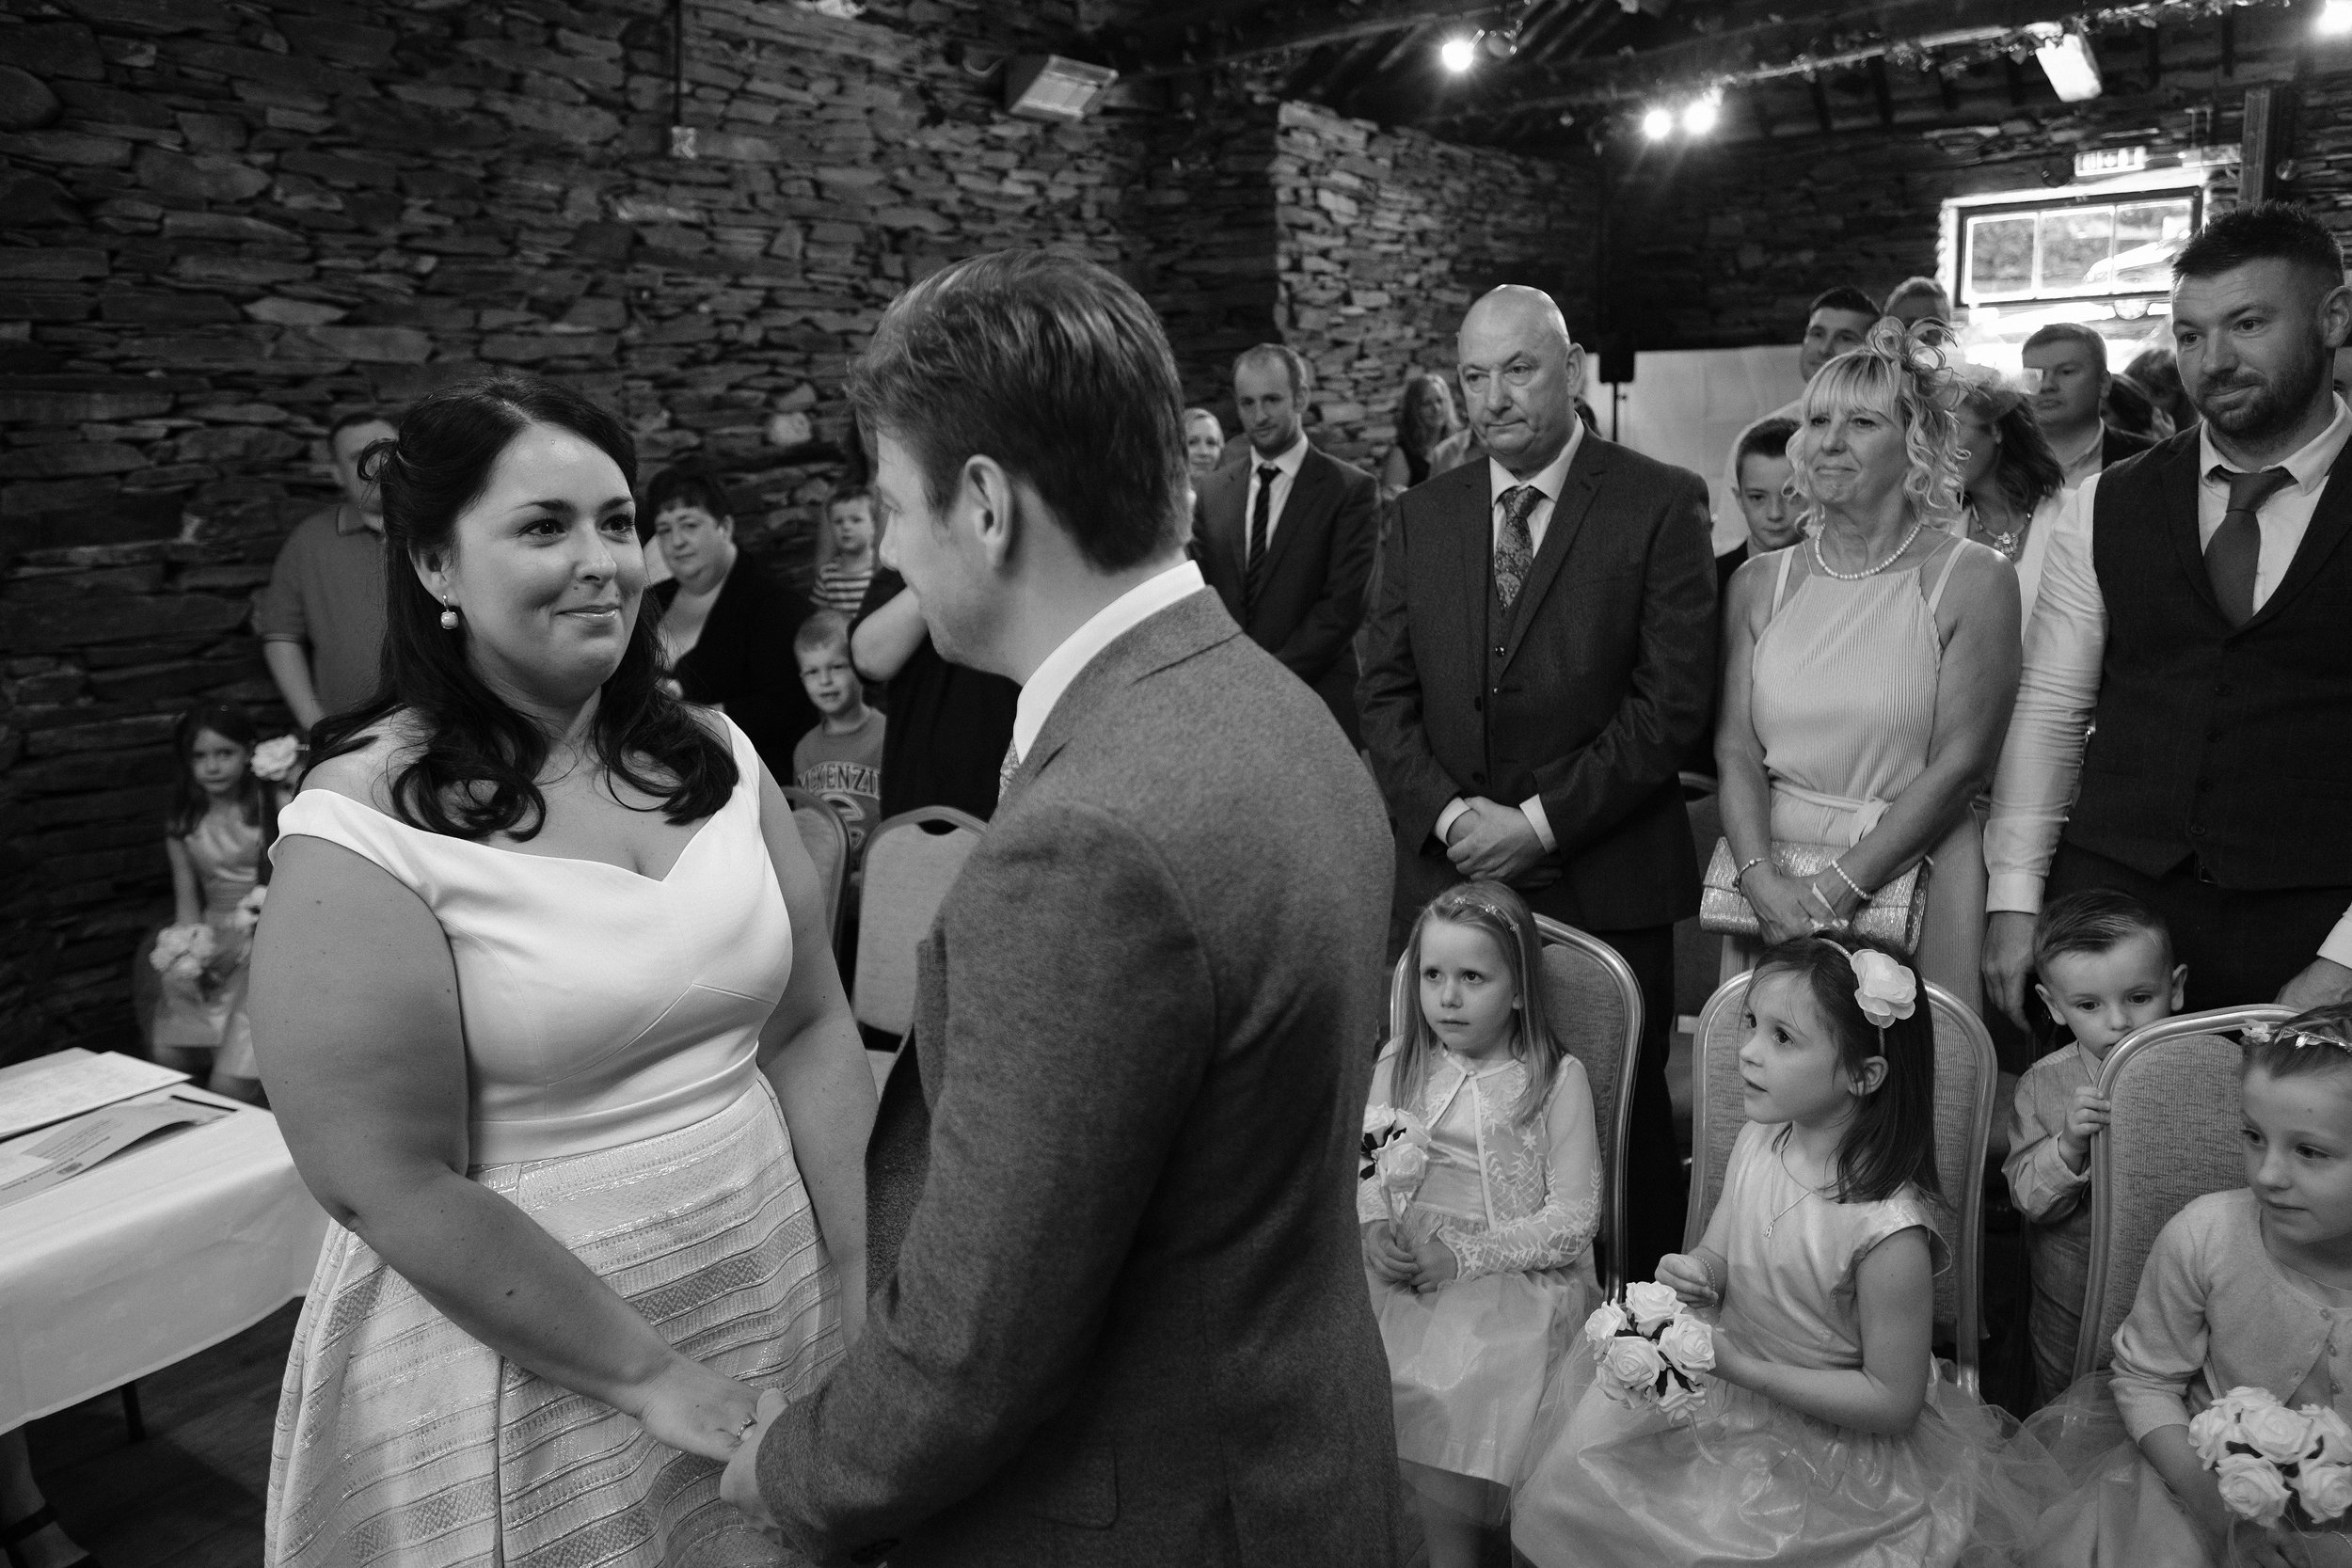 A black and white photo of the bride and groom holding hands during the ceremony at Julia and Darren's Lake District wedding by Barry Forshaw